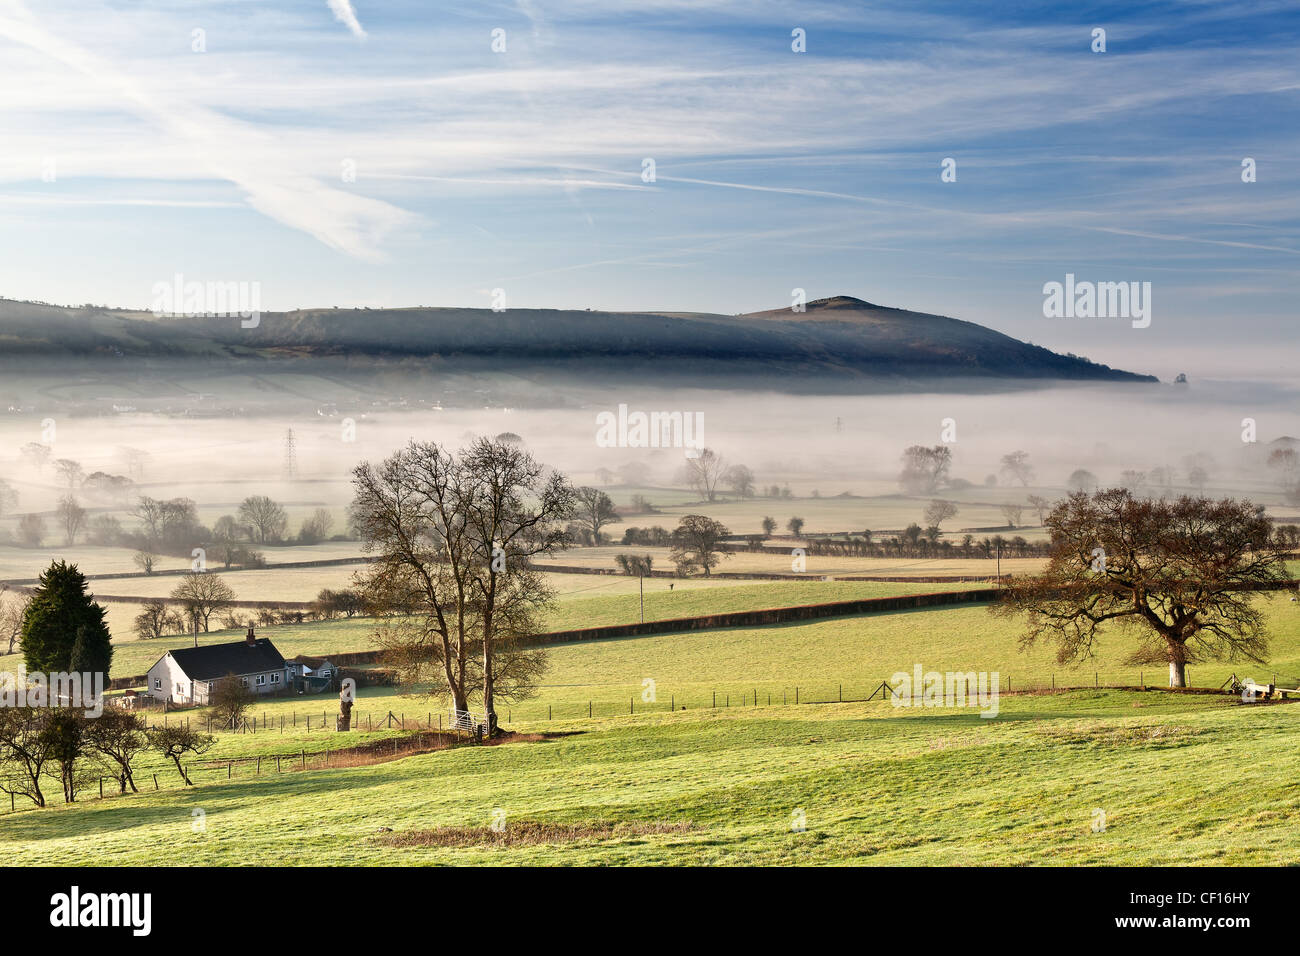 Crook Peak and The Mendips from Wint Hill on a misty winter morning at sunrise - Stock Image